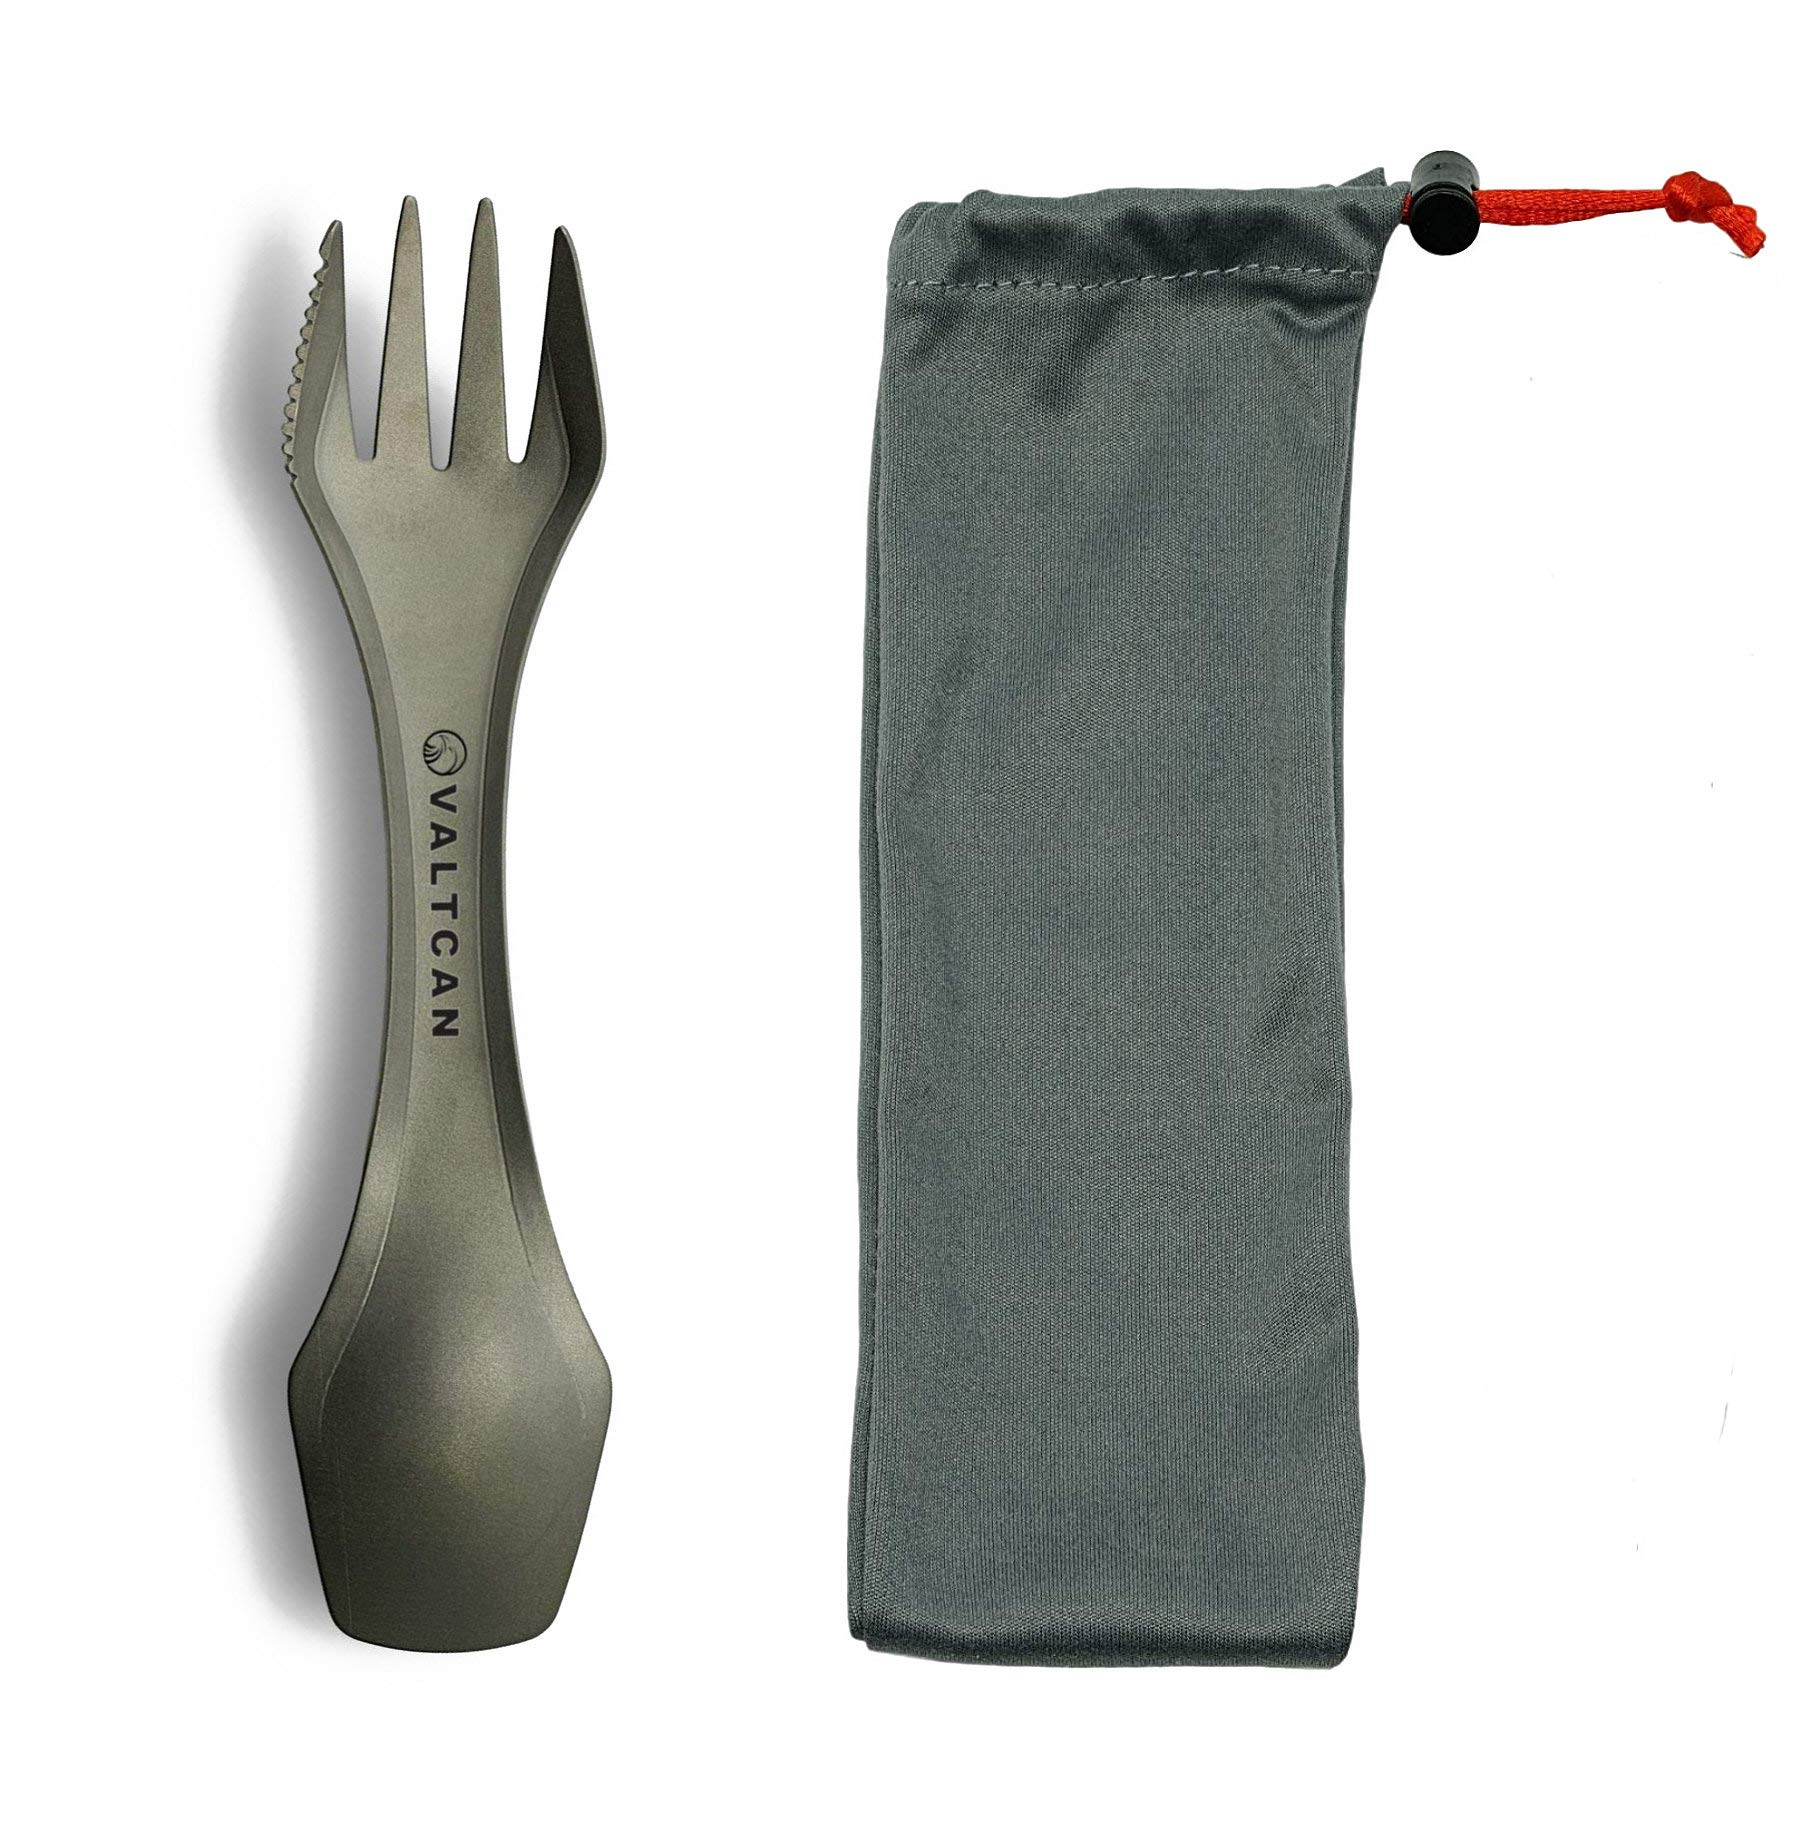 Valtcan Titanium Spork for Hiking Camping Outdoor Lunch Home Office Meals on The Go Lightweight and Sturdy 3-in-1 Fork Spoon Knife Combo Set Utensil Flatware